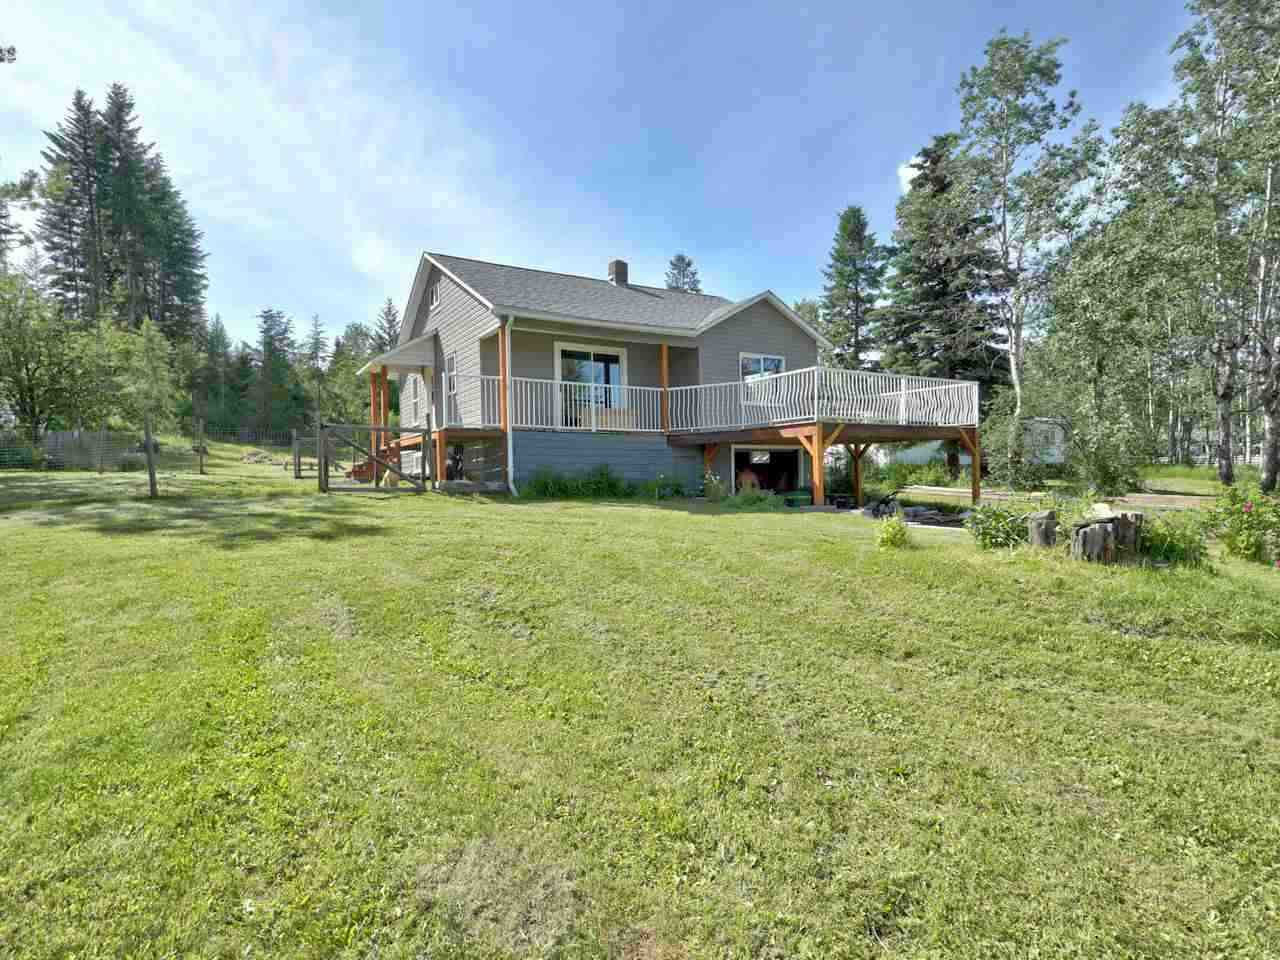 Main Photo: 4508 EAGLE CREEK Road: Forest Grove House for sale (100 Mile House (Zone 10))  : MLS®# R2524964